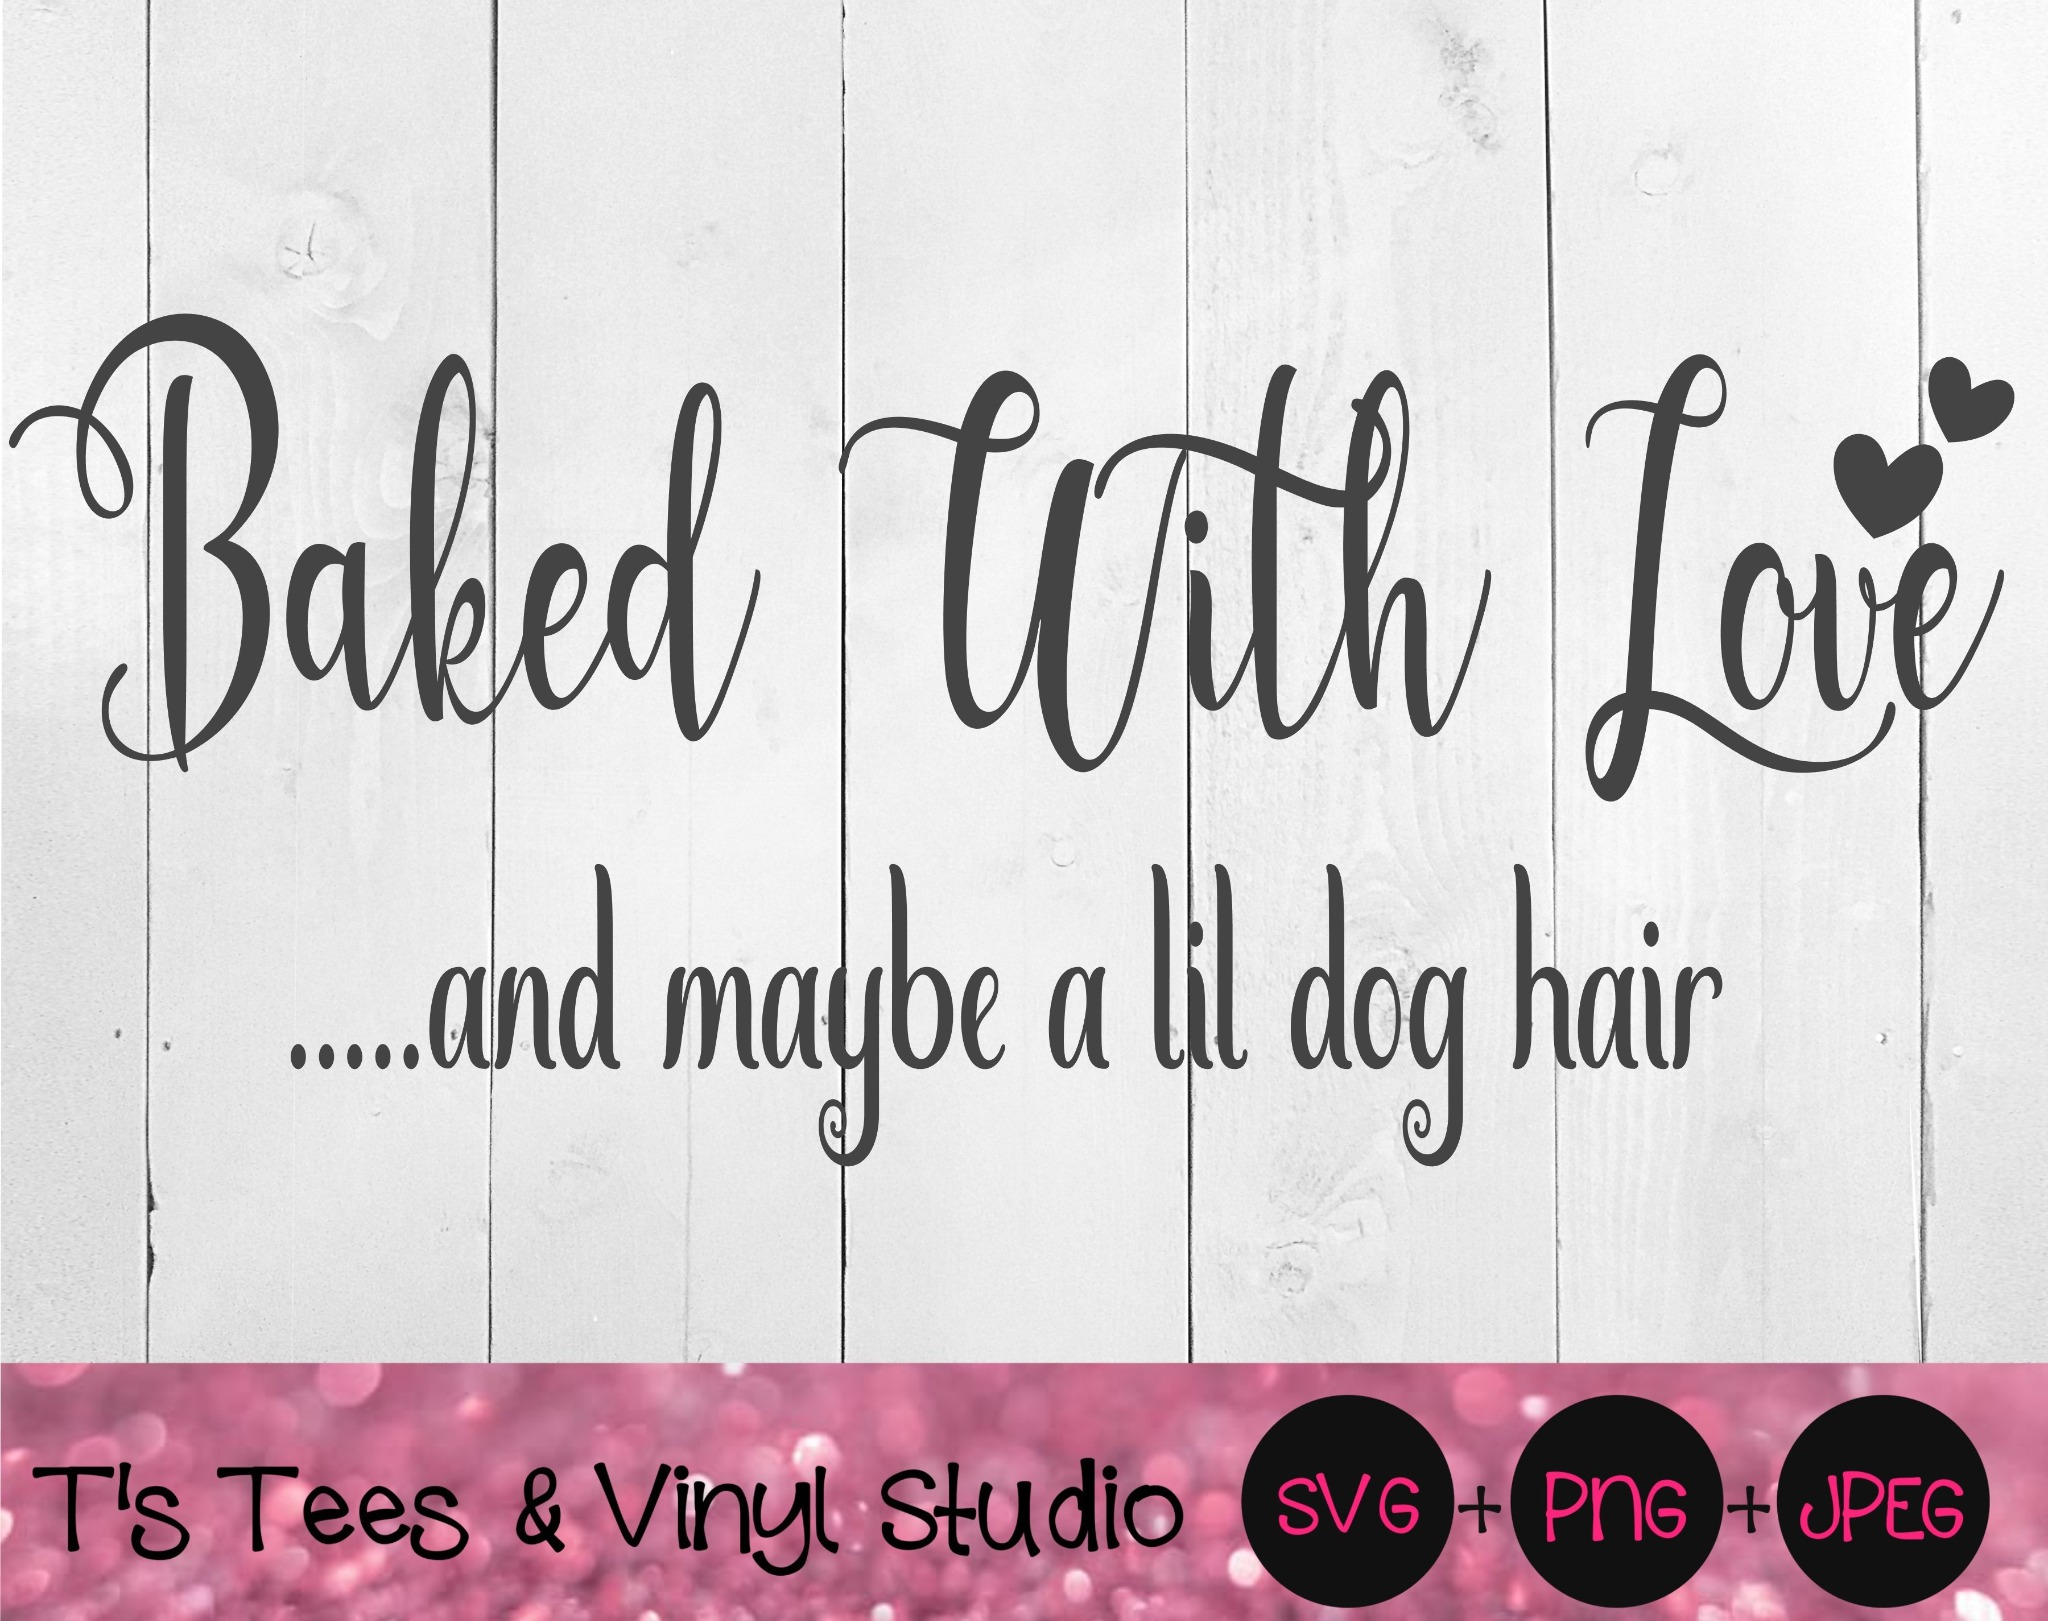 Baked With Love Svg, And Maybe A Lil Dog Hair, Handmade, Homemade, Made With Love, Apron Saying, Fun